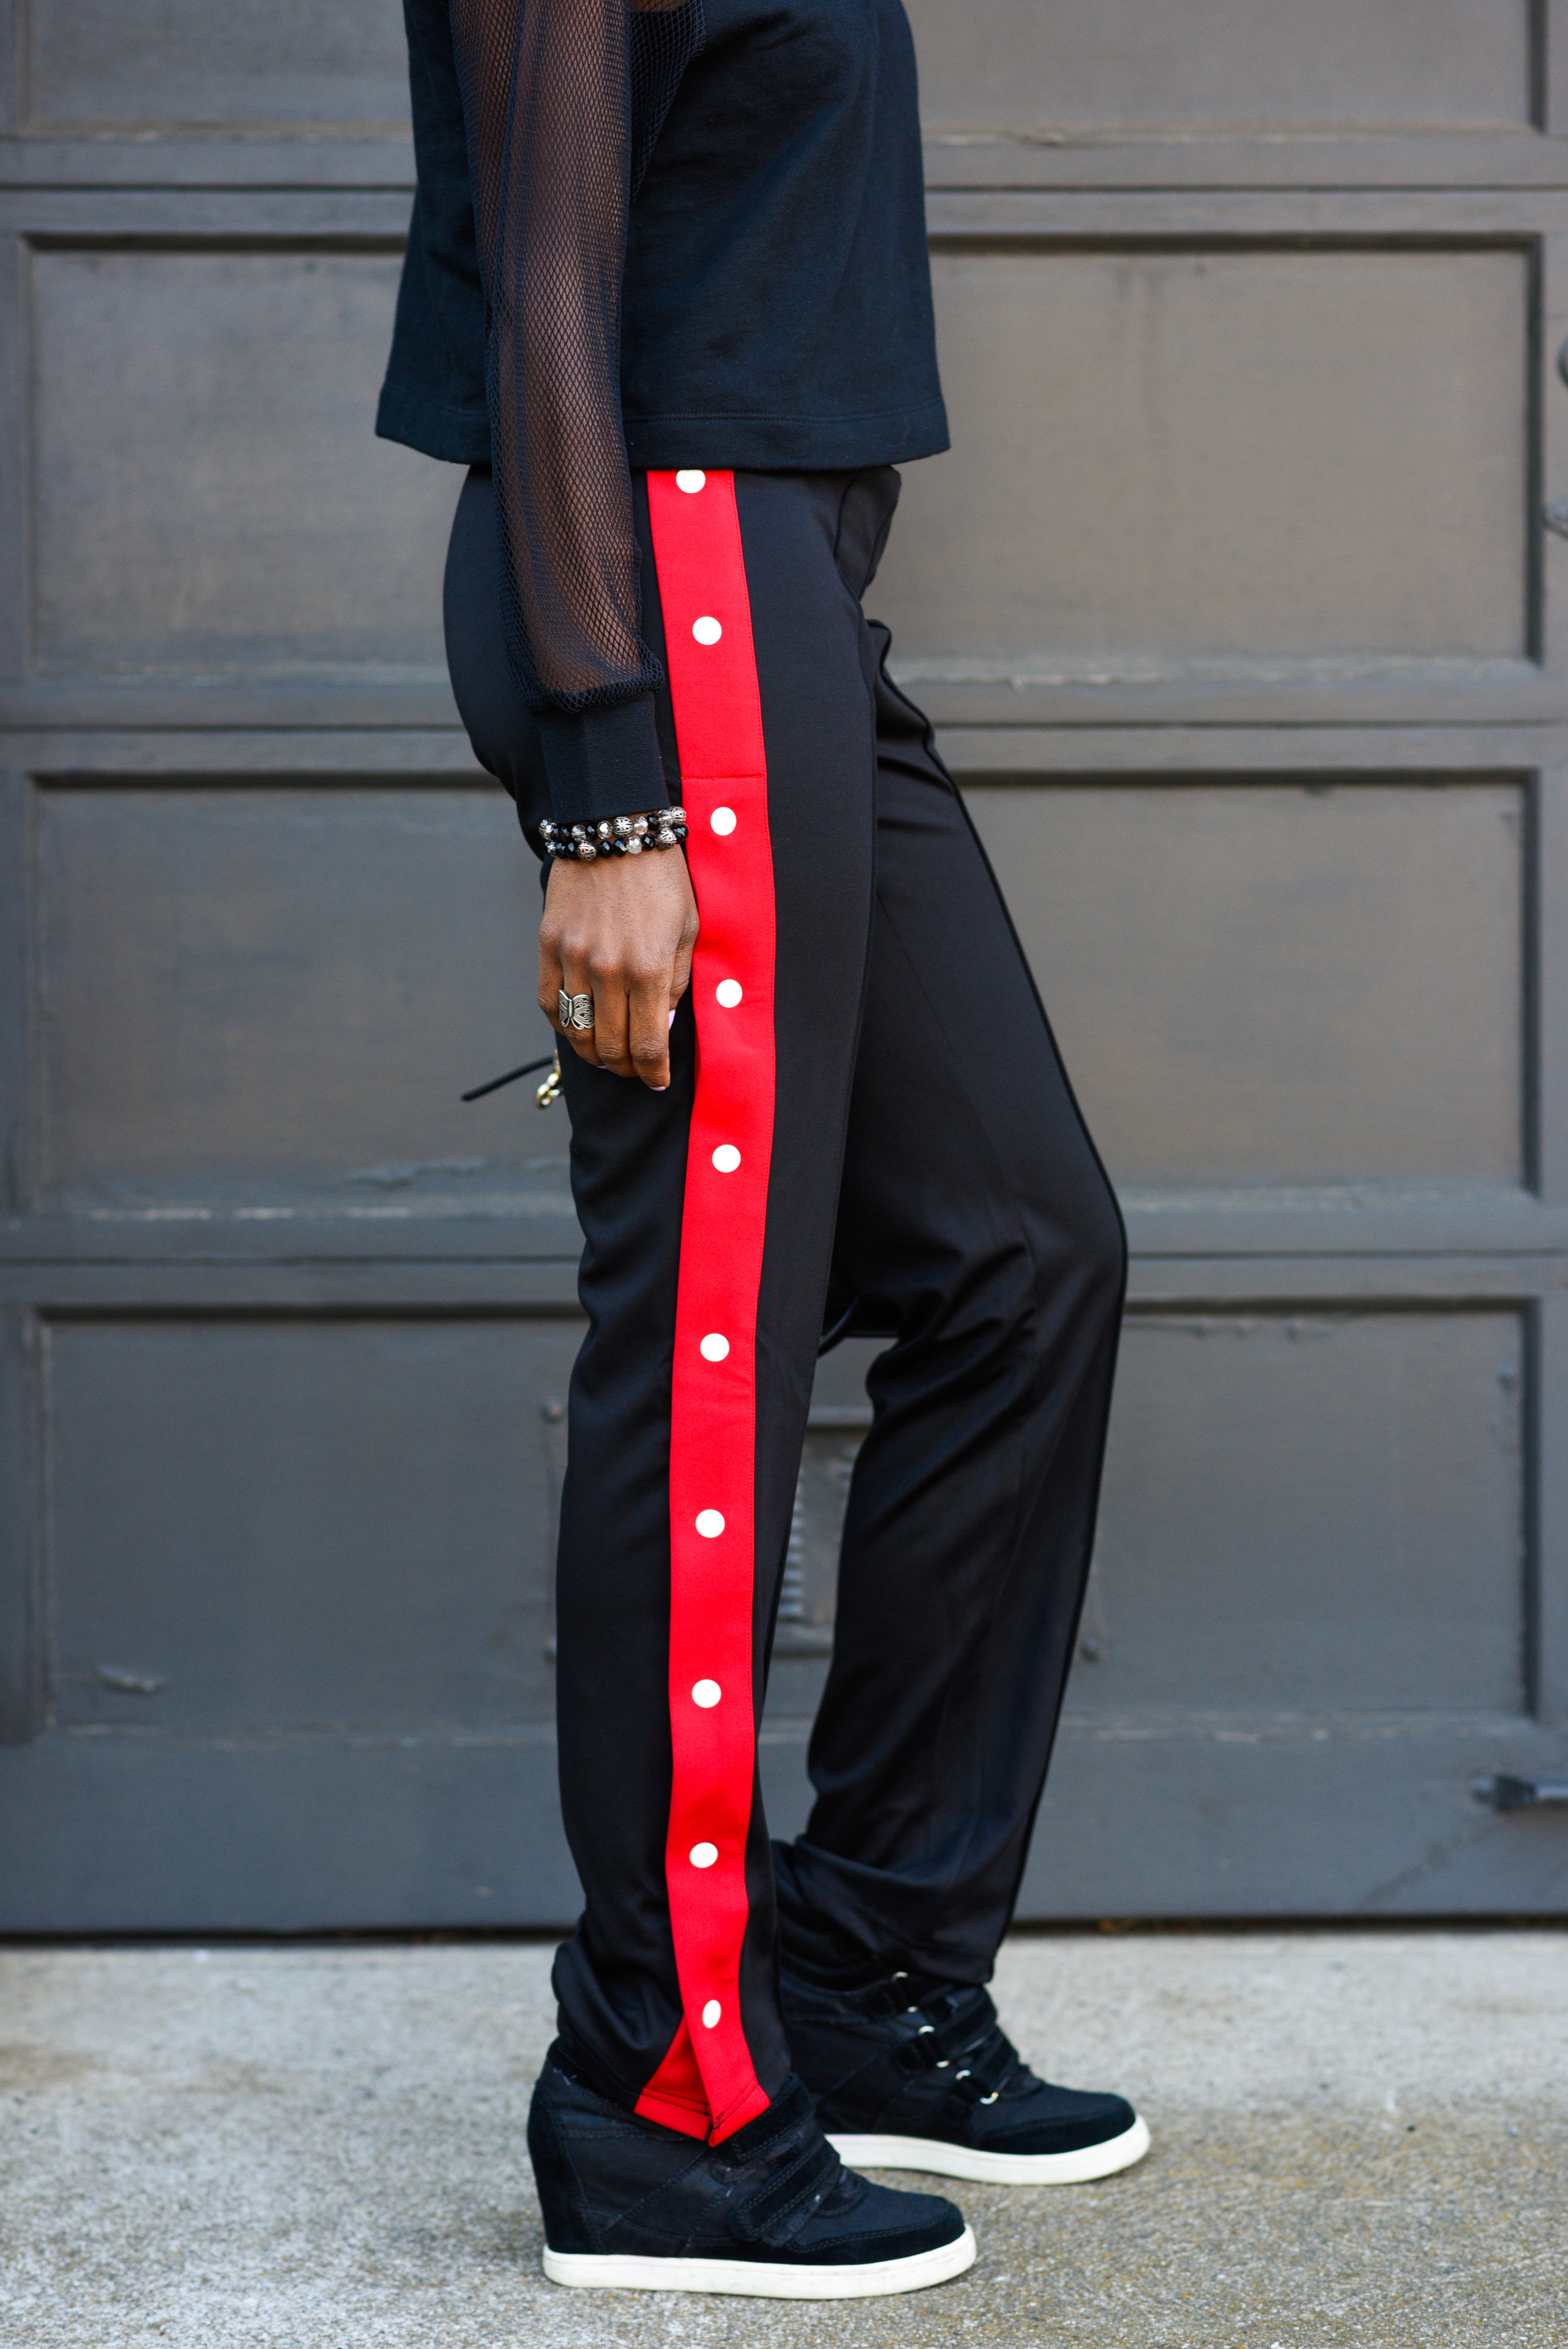 these pants doe -